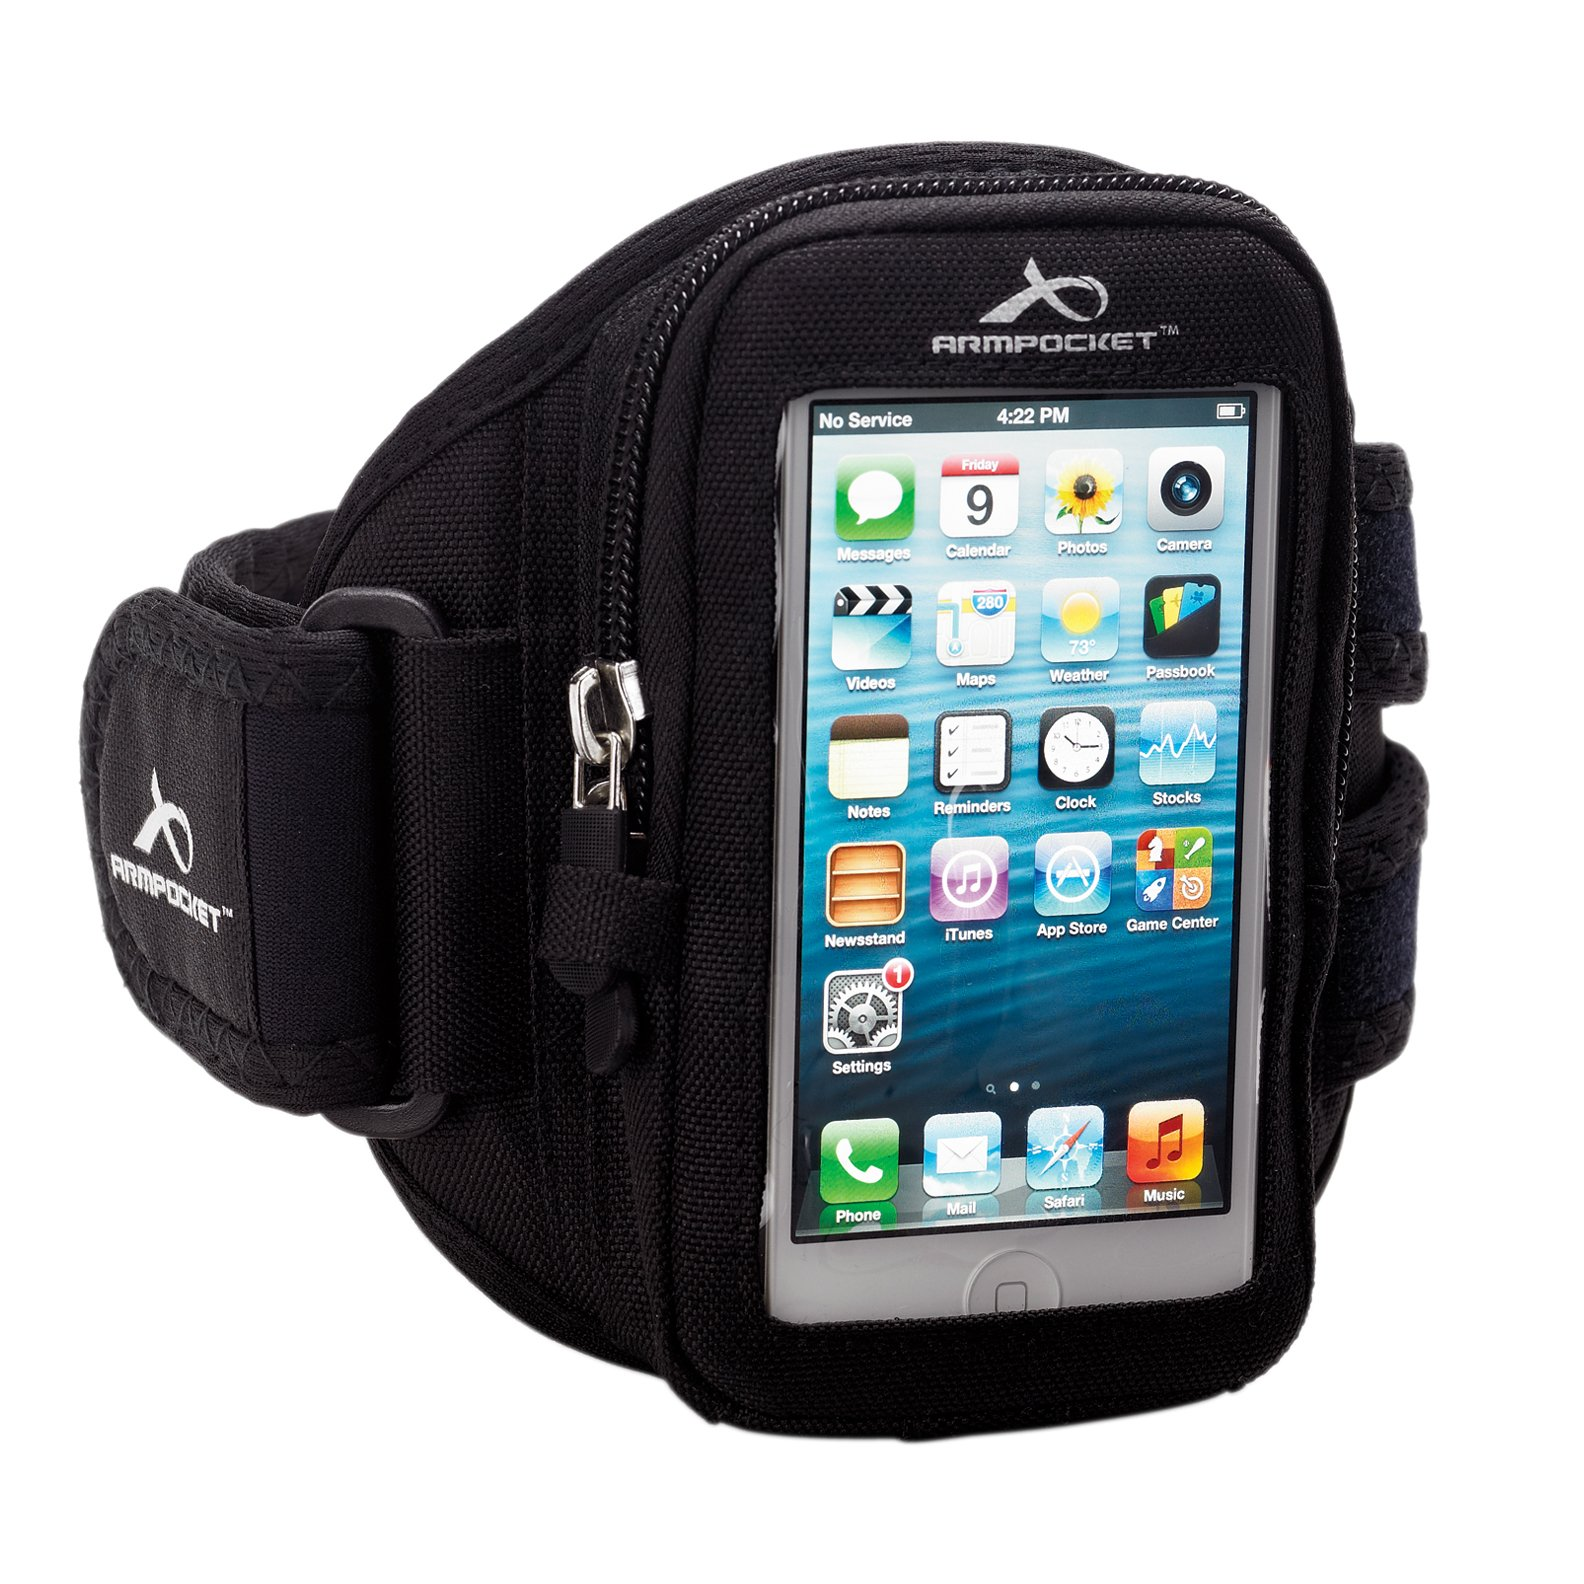 Armpocket Aero i-10 armband for iPhone 5s/5c/4 and similar phones or cases up to 5 inches. Black, Small Strap Length